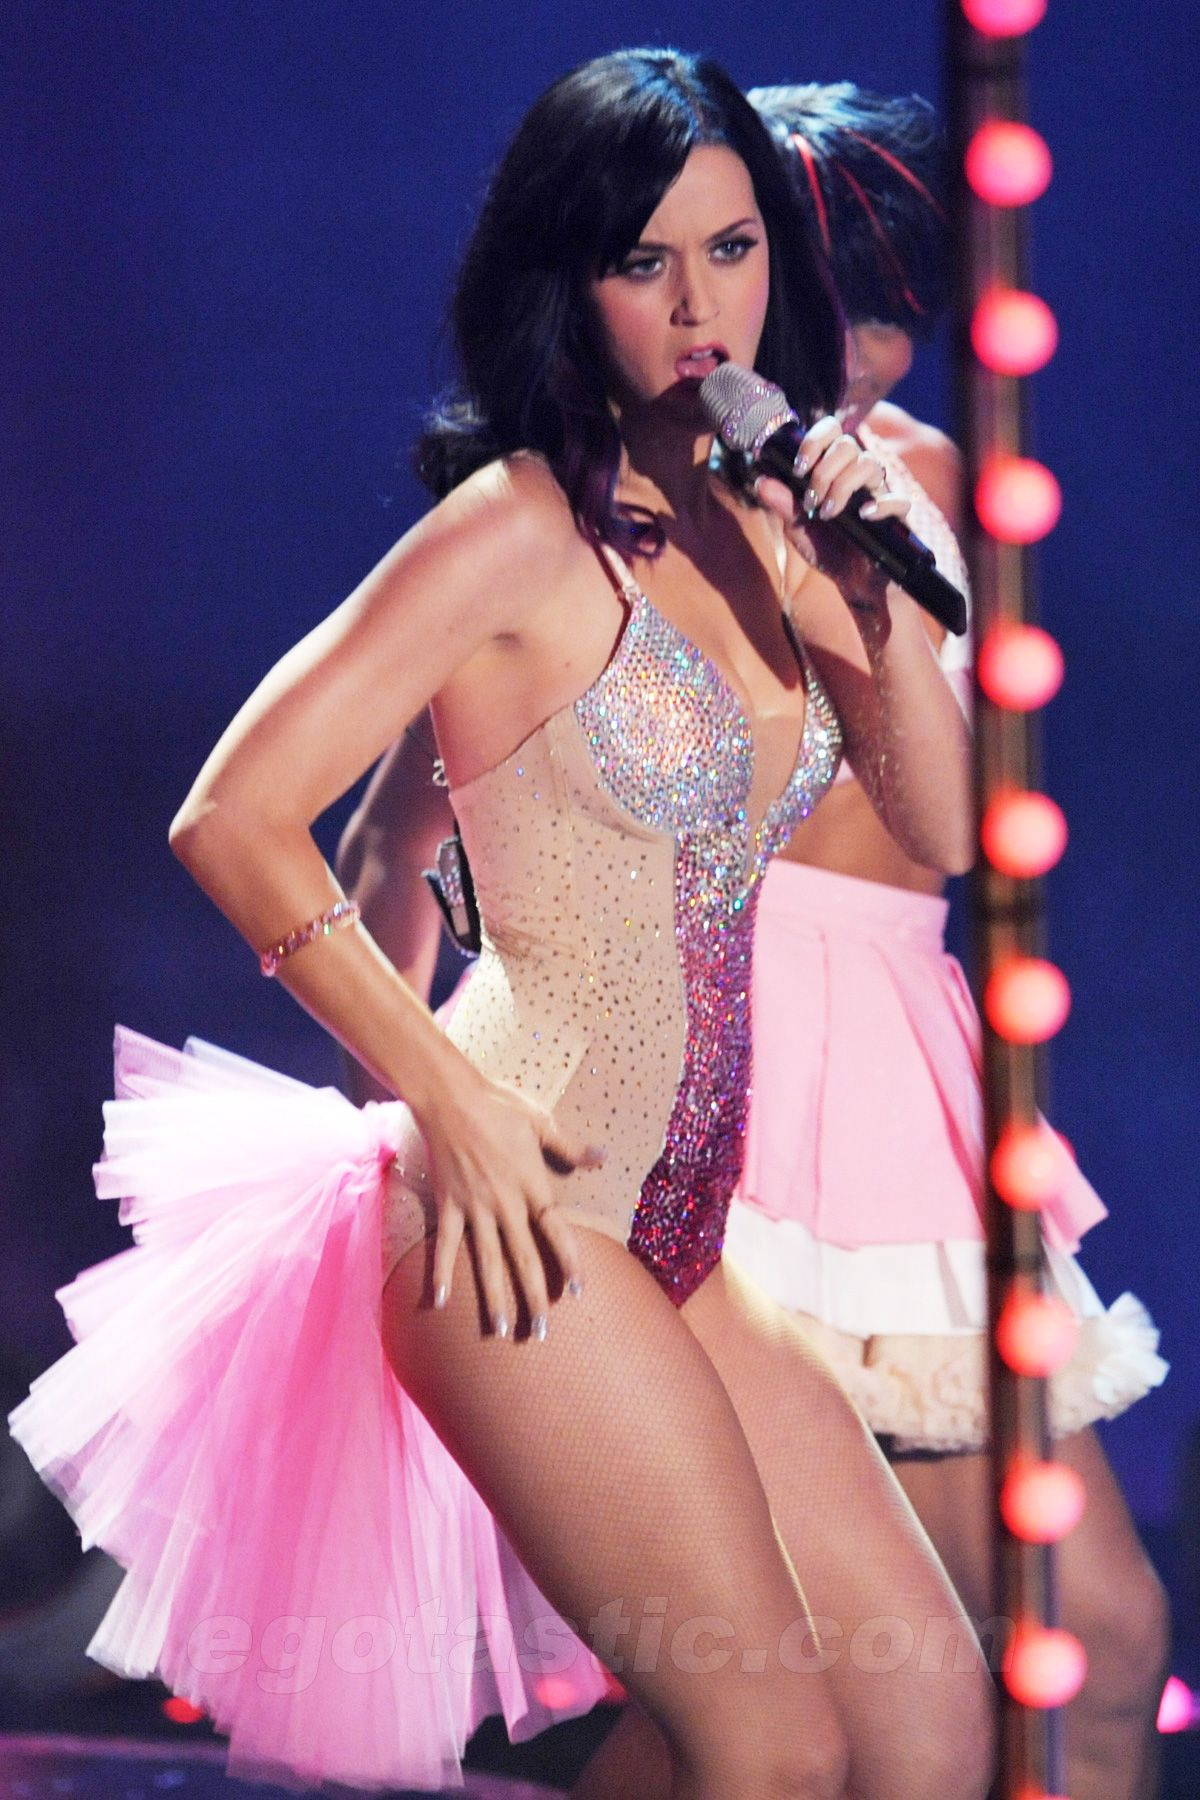 The Sexy And Amazing Katy Perry  Can I Just Meet Katy -2911